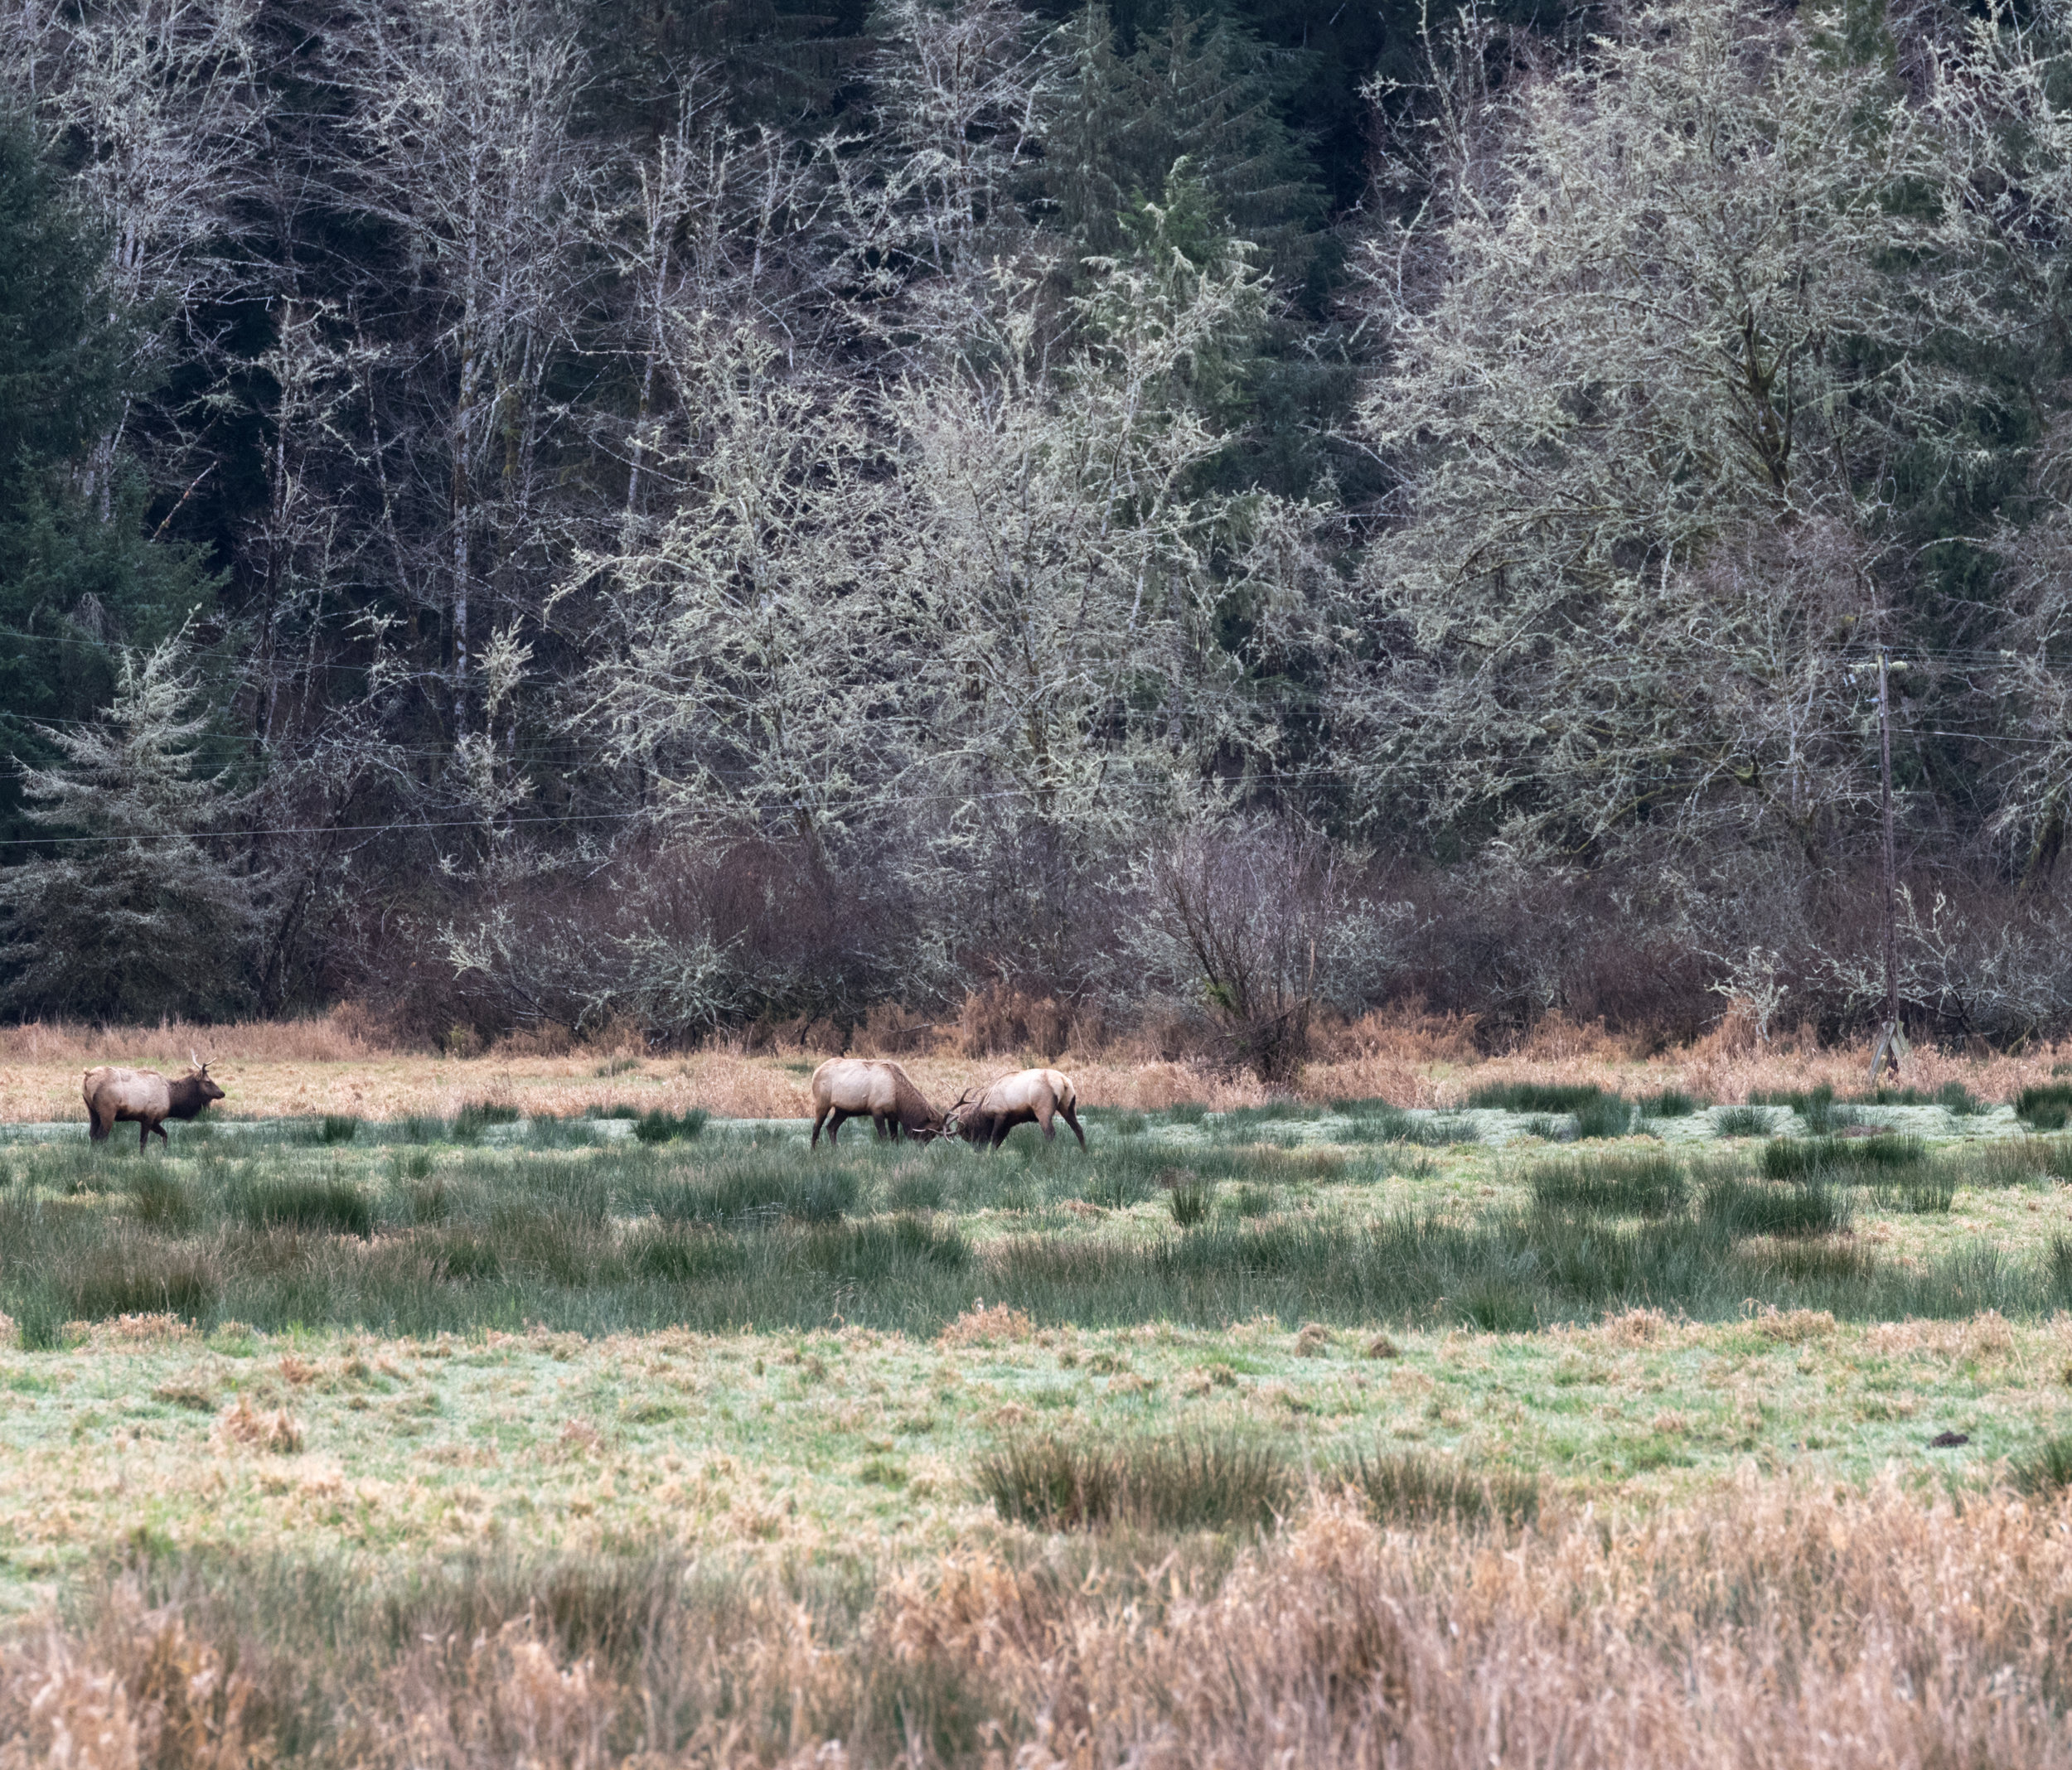 2 Roosevelt Bull Elk sparring out in the viewing area.